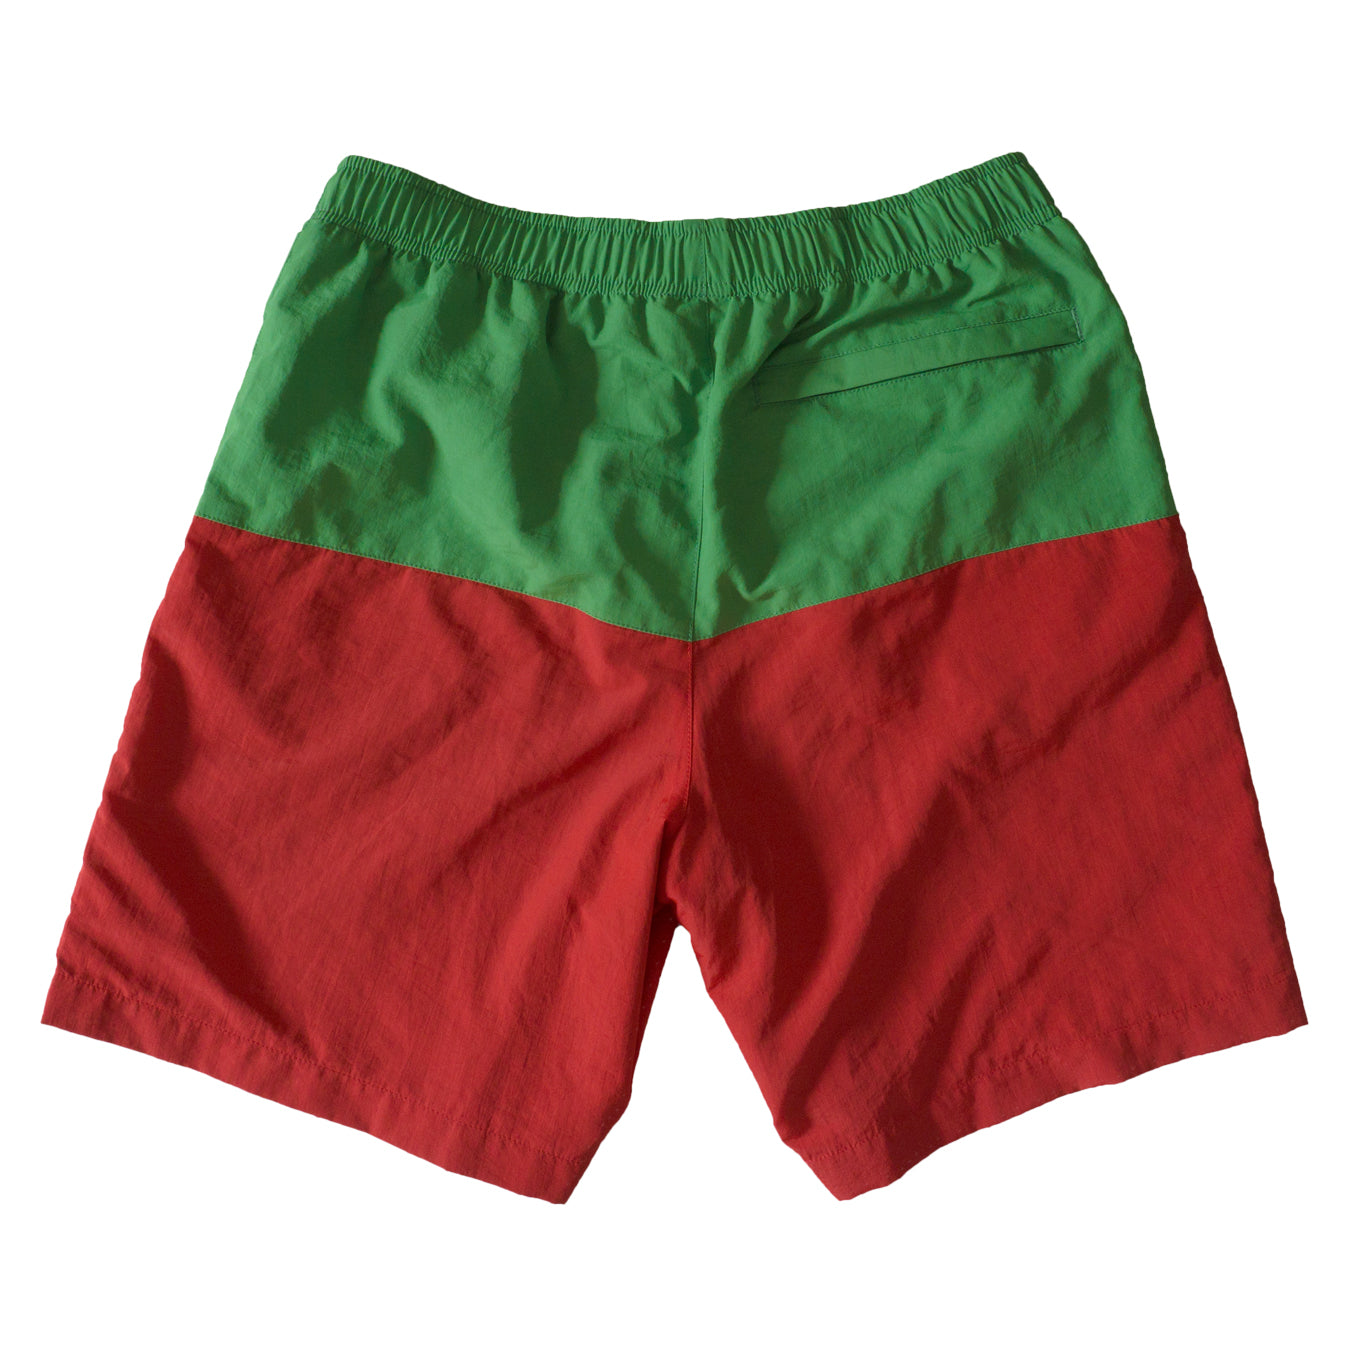 Split Water Shorts - Green/Red